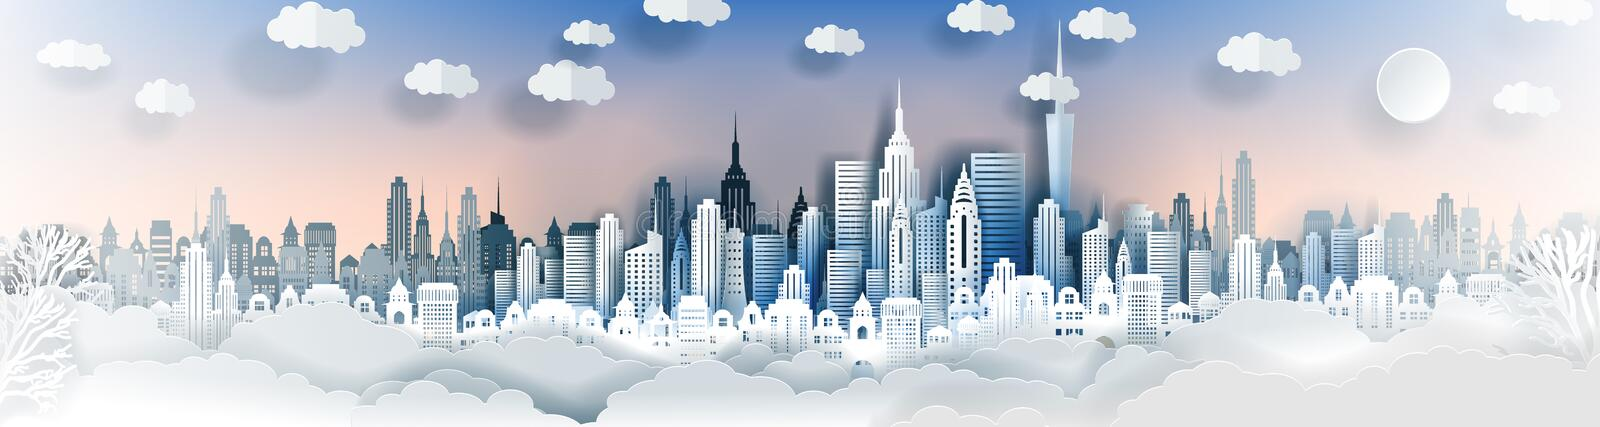 City landscape template. Paper city landscape. Downtown landscape with high skyscrapers. royalty free illustration